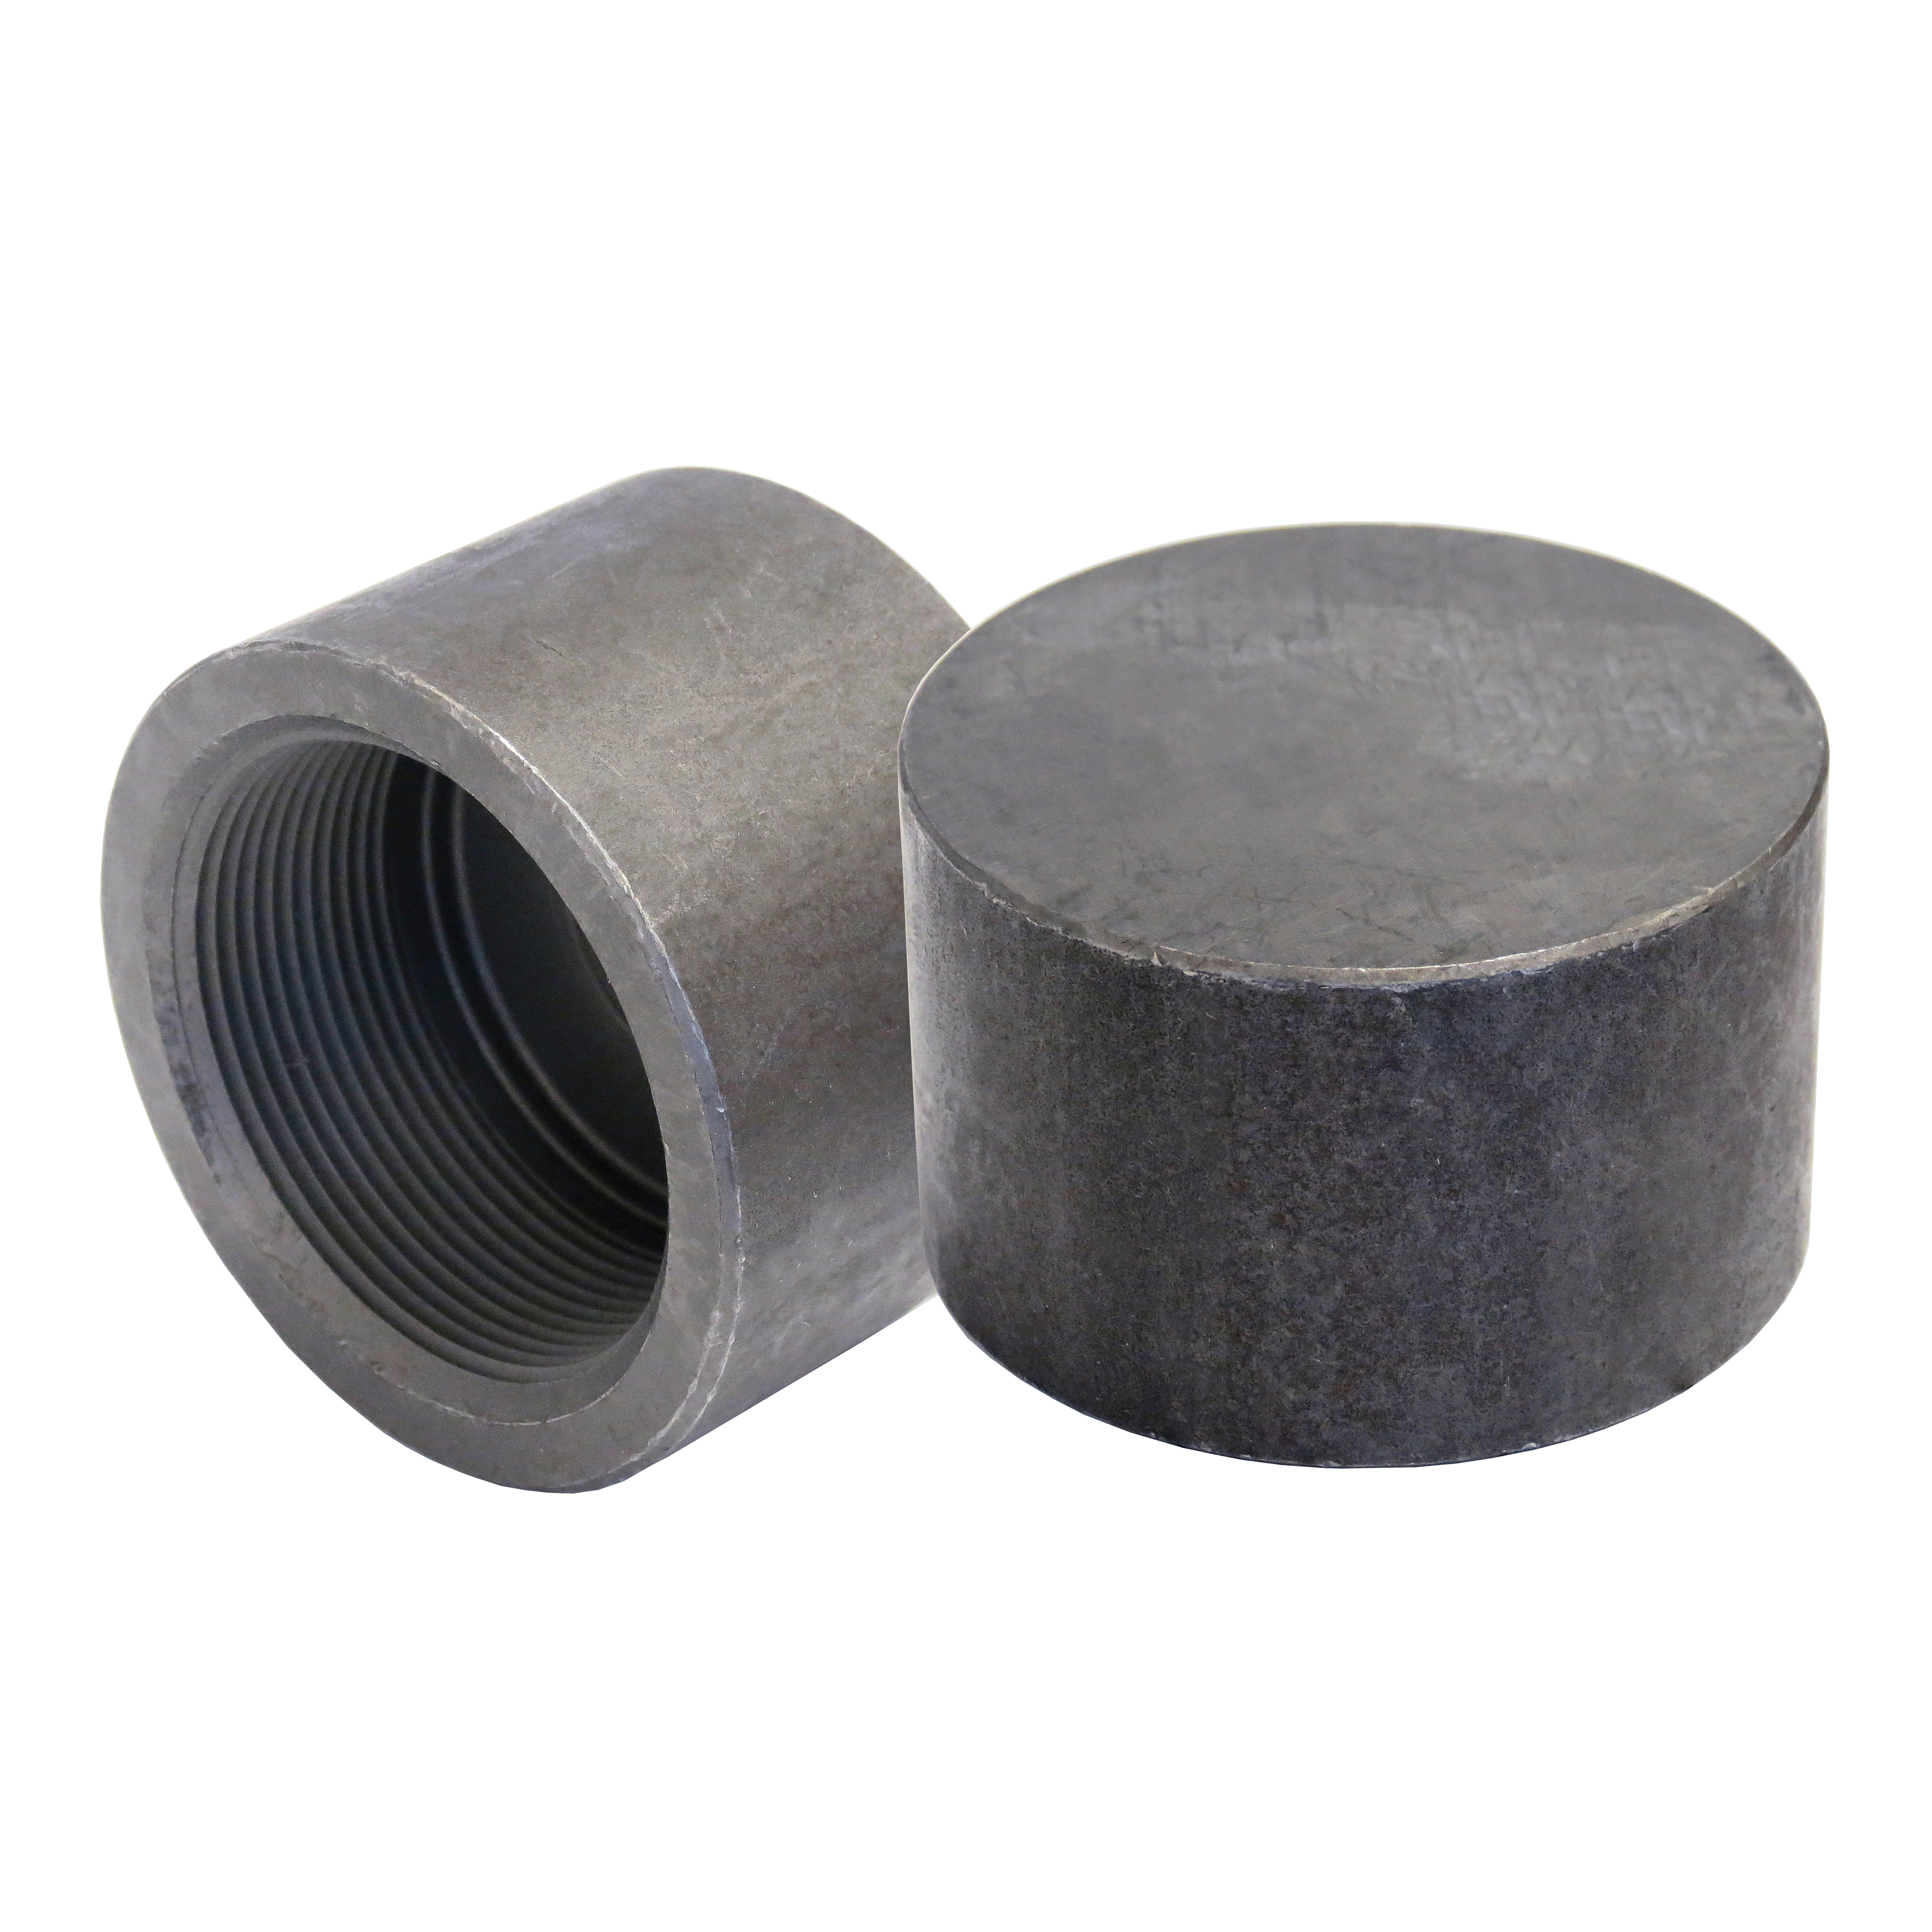 Anvil® 0361188006 FIG 2120 Pipe Cap, 1/8 in Nominal, NPT End Style, 3000 lb, Steel, Black Oxide, Domestic